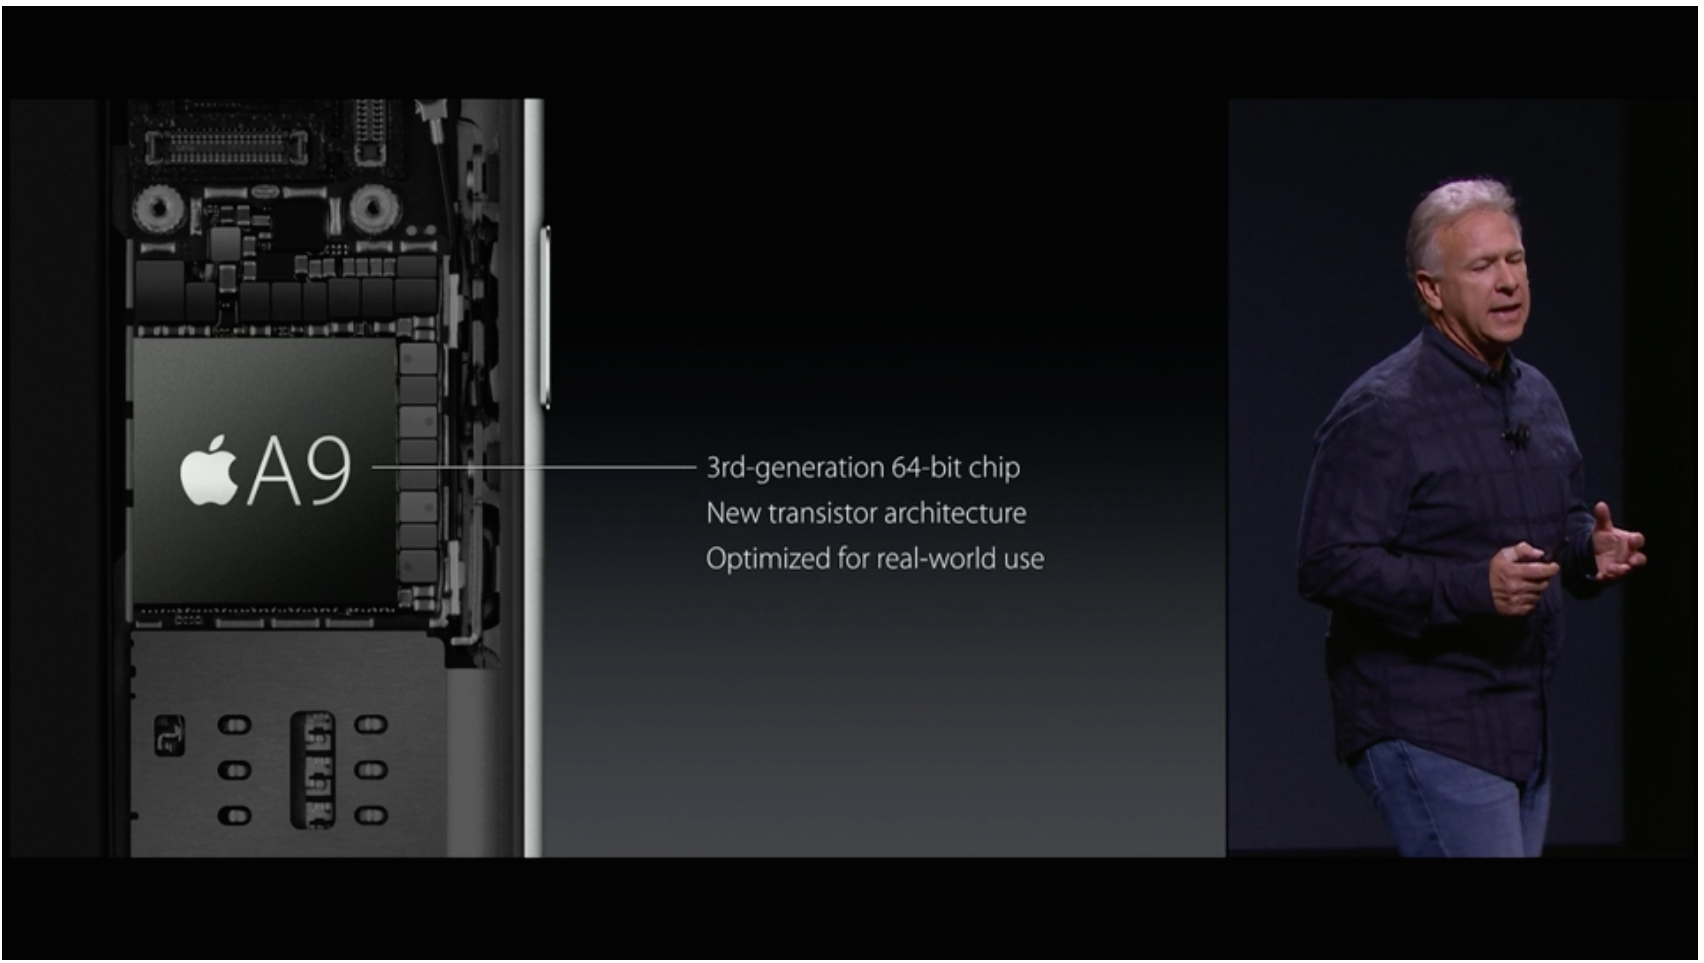 The latest A9 processor with a brief rundown of specs.